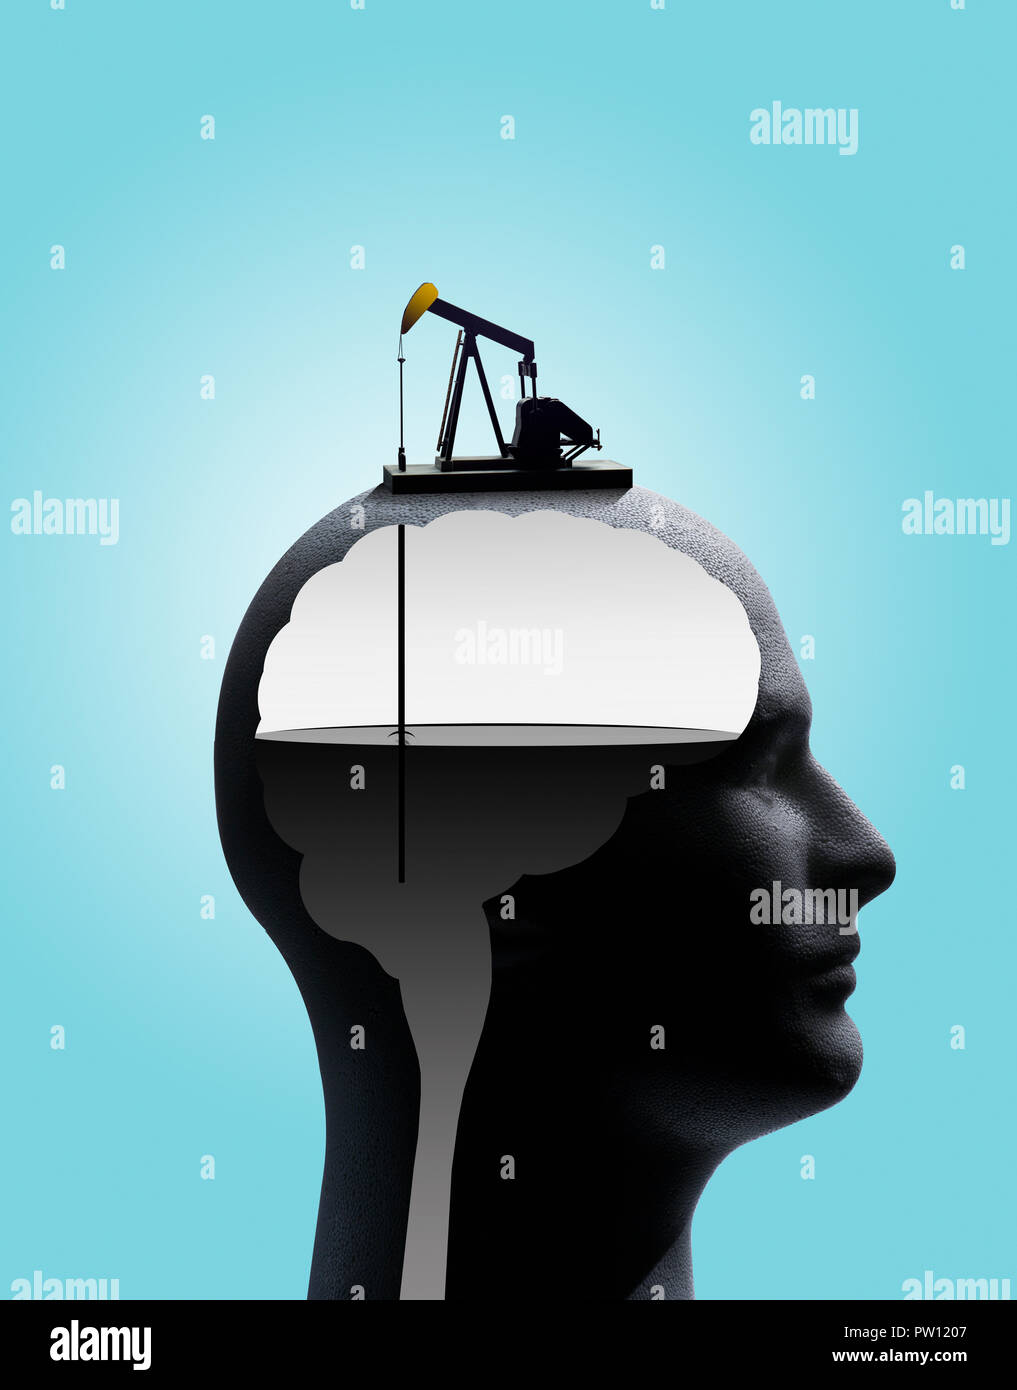 Concept Profile of a Man with Outline of Brain and Stem, showing a Pump Pumping Oil from Brain, Oil Addict, Petrol Industry, Petroleum - Stock Image